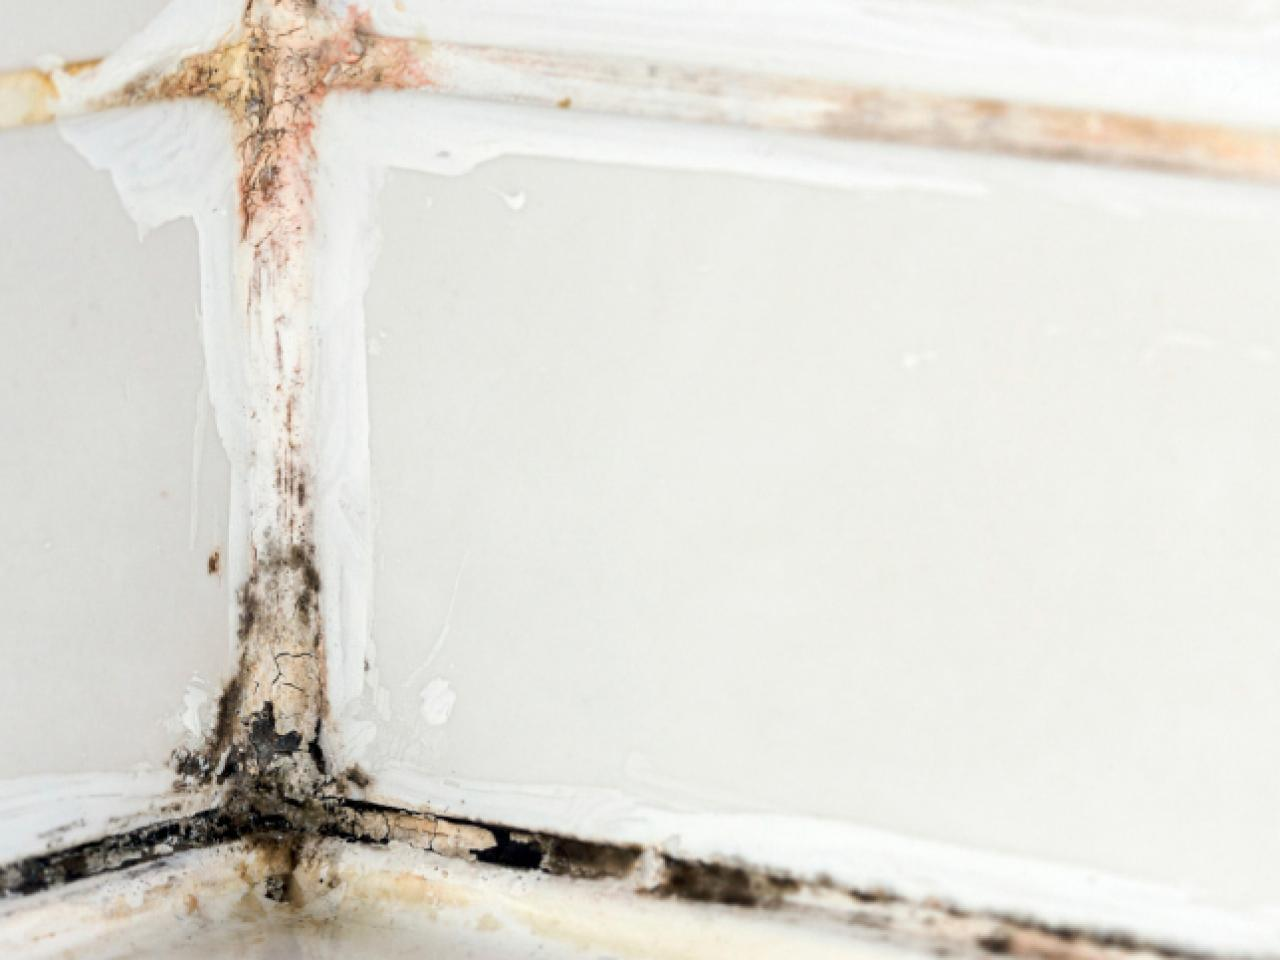 Black Mold In Walls how to remove black mold | hgtv